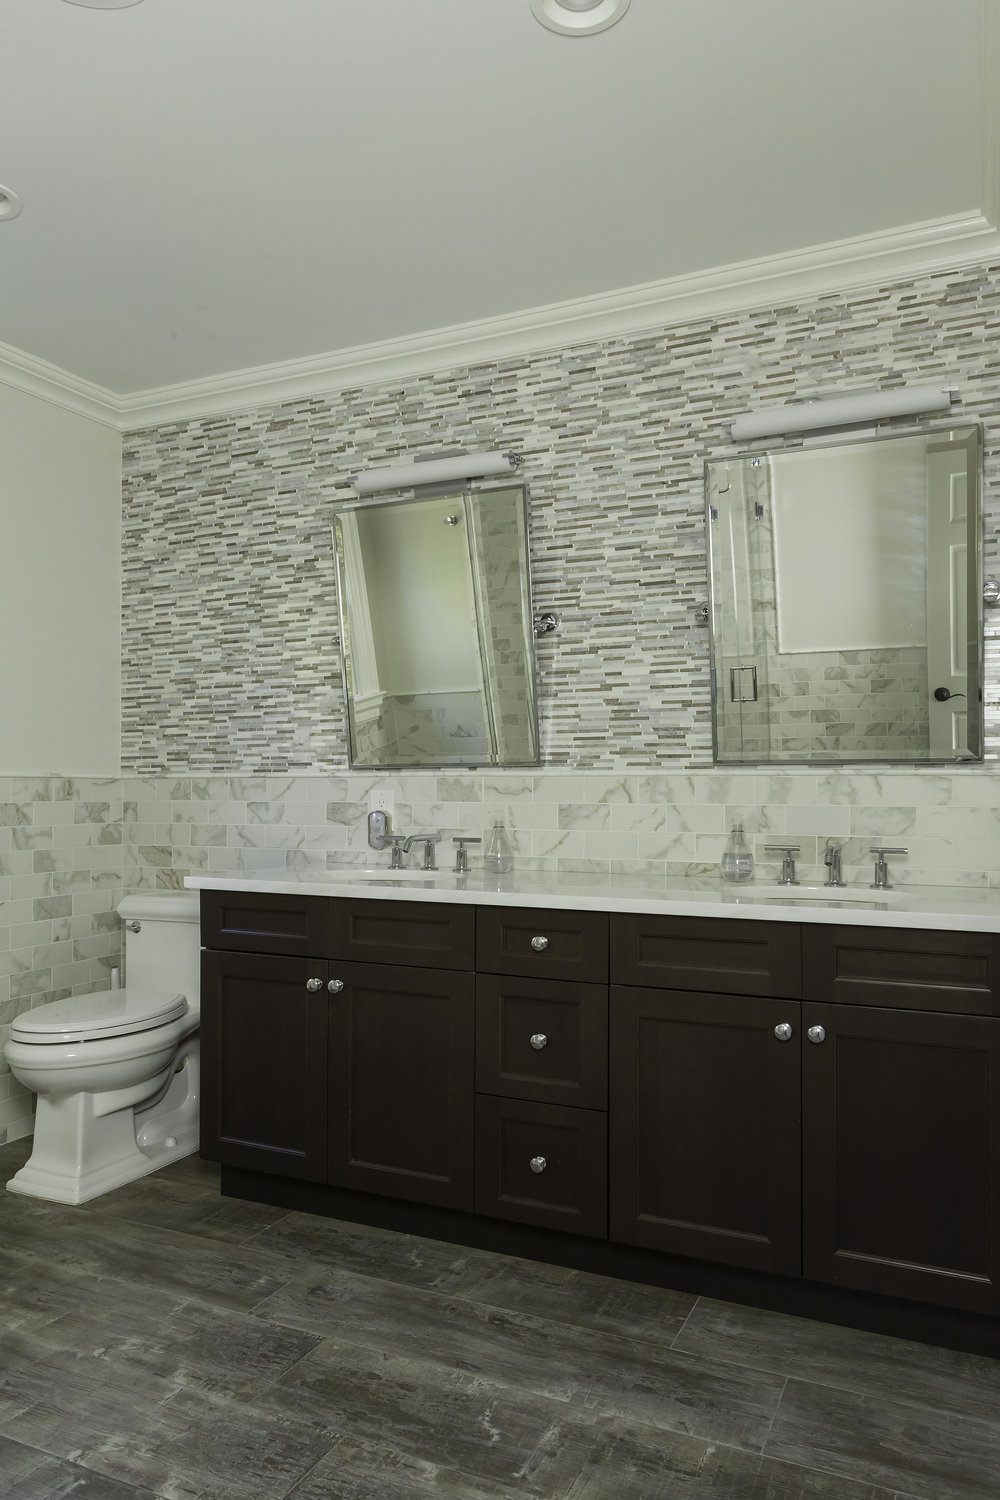 Bathroom with double sinks and angled mirrors hanging above